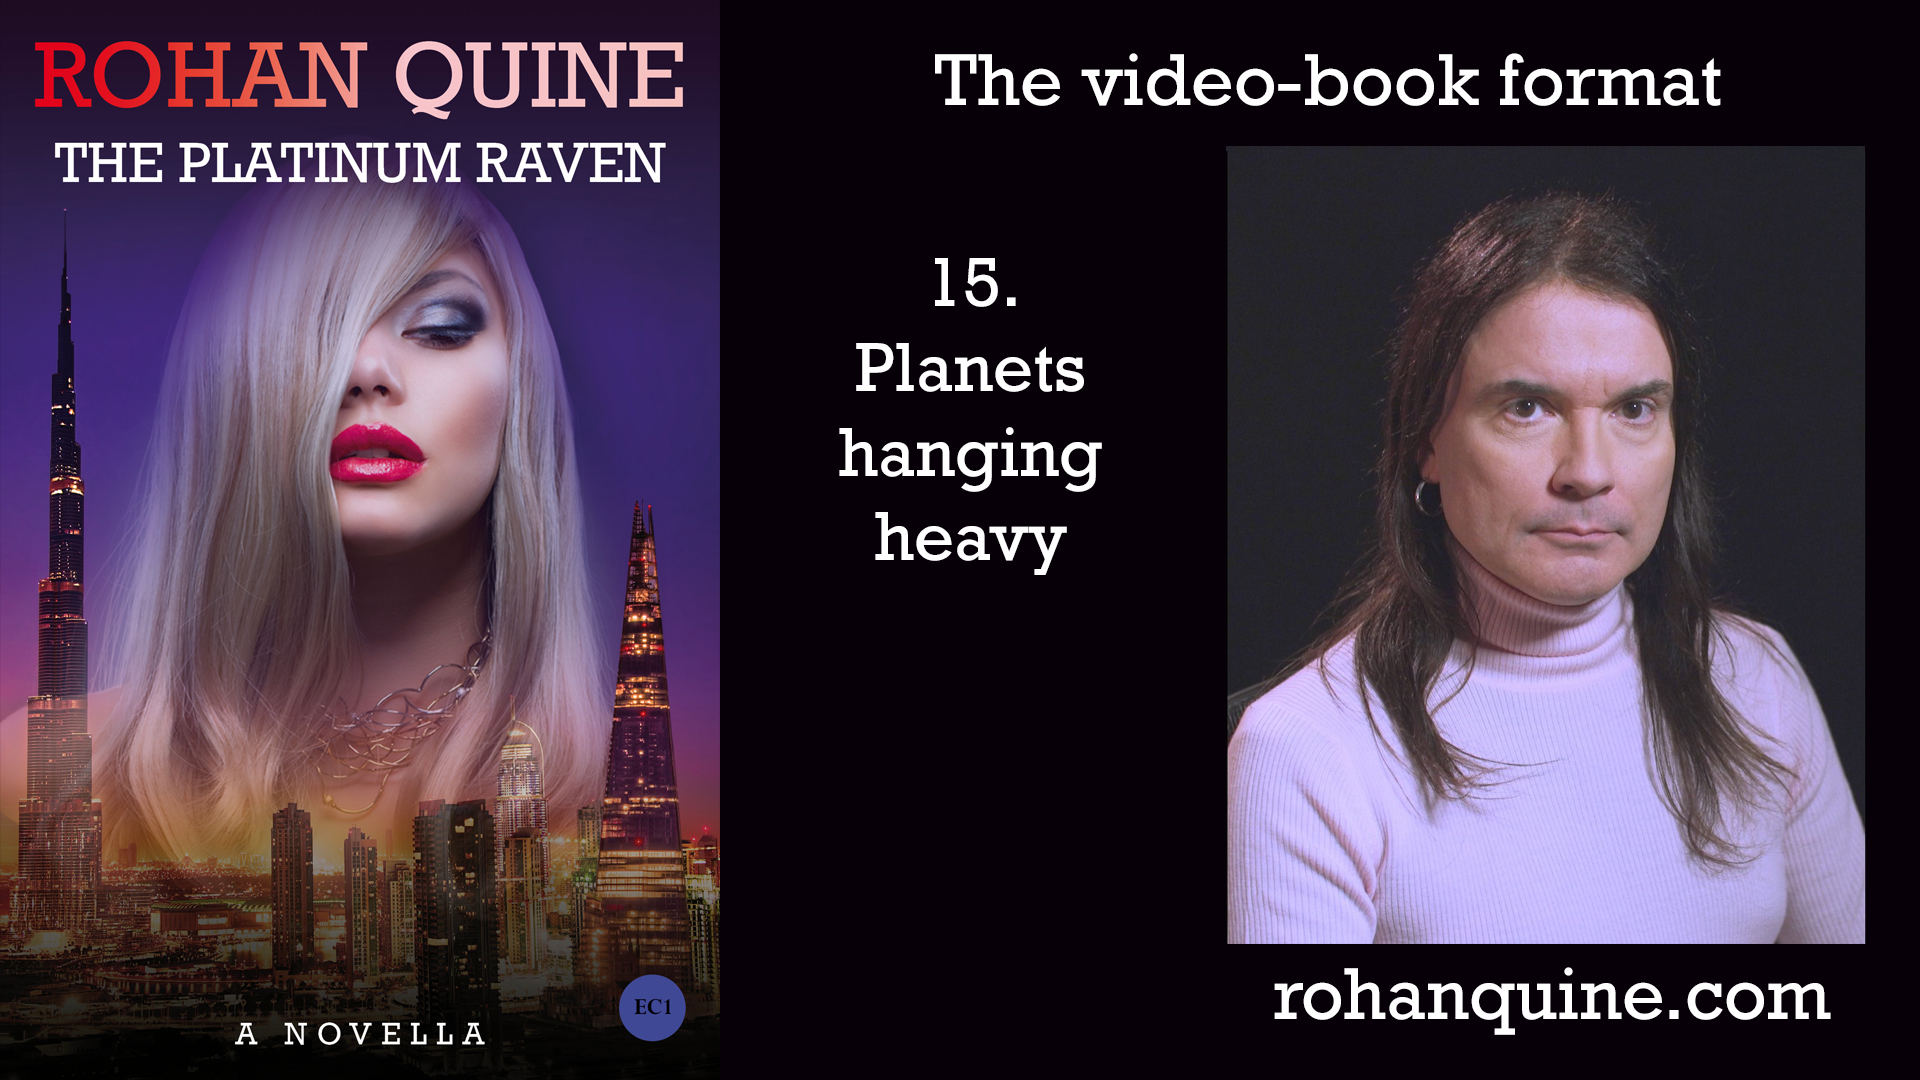 THE PLATINUM RAVEN by Rohan Quine - video-book format - chapter 15